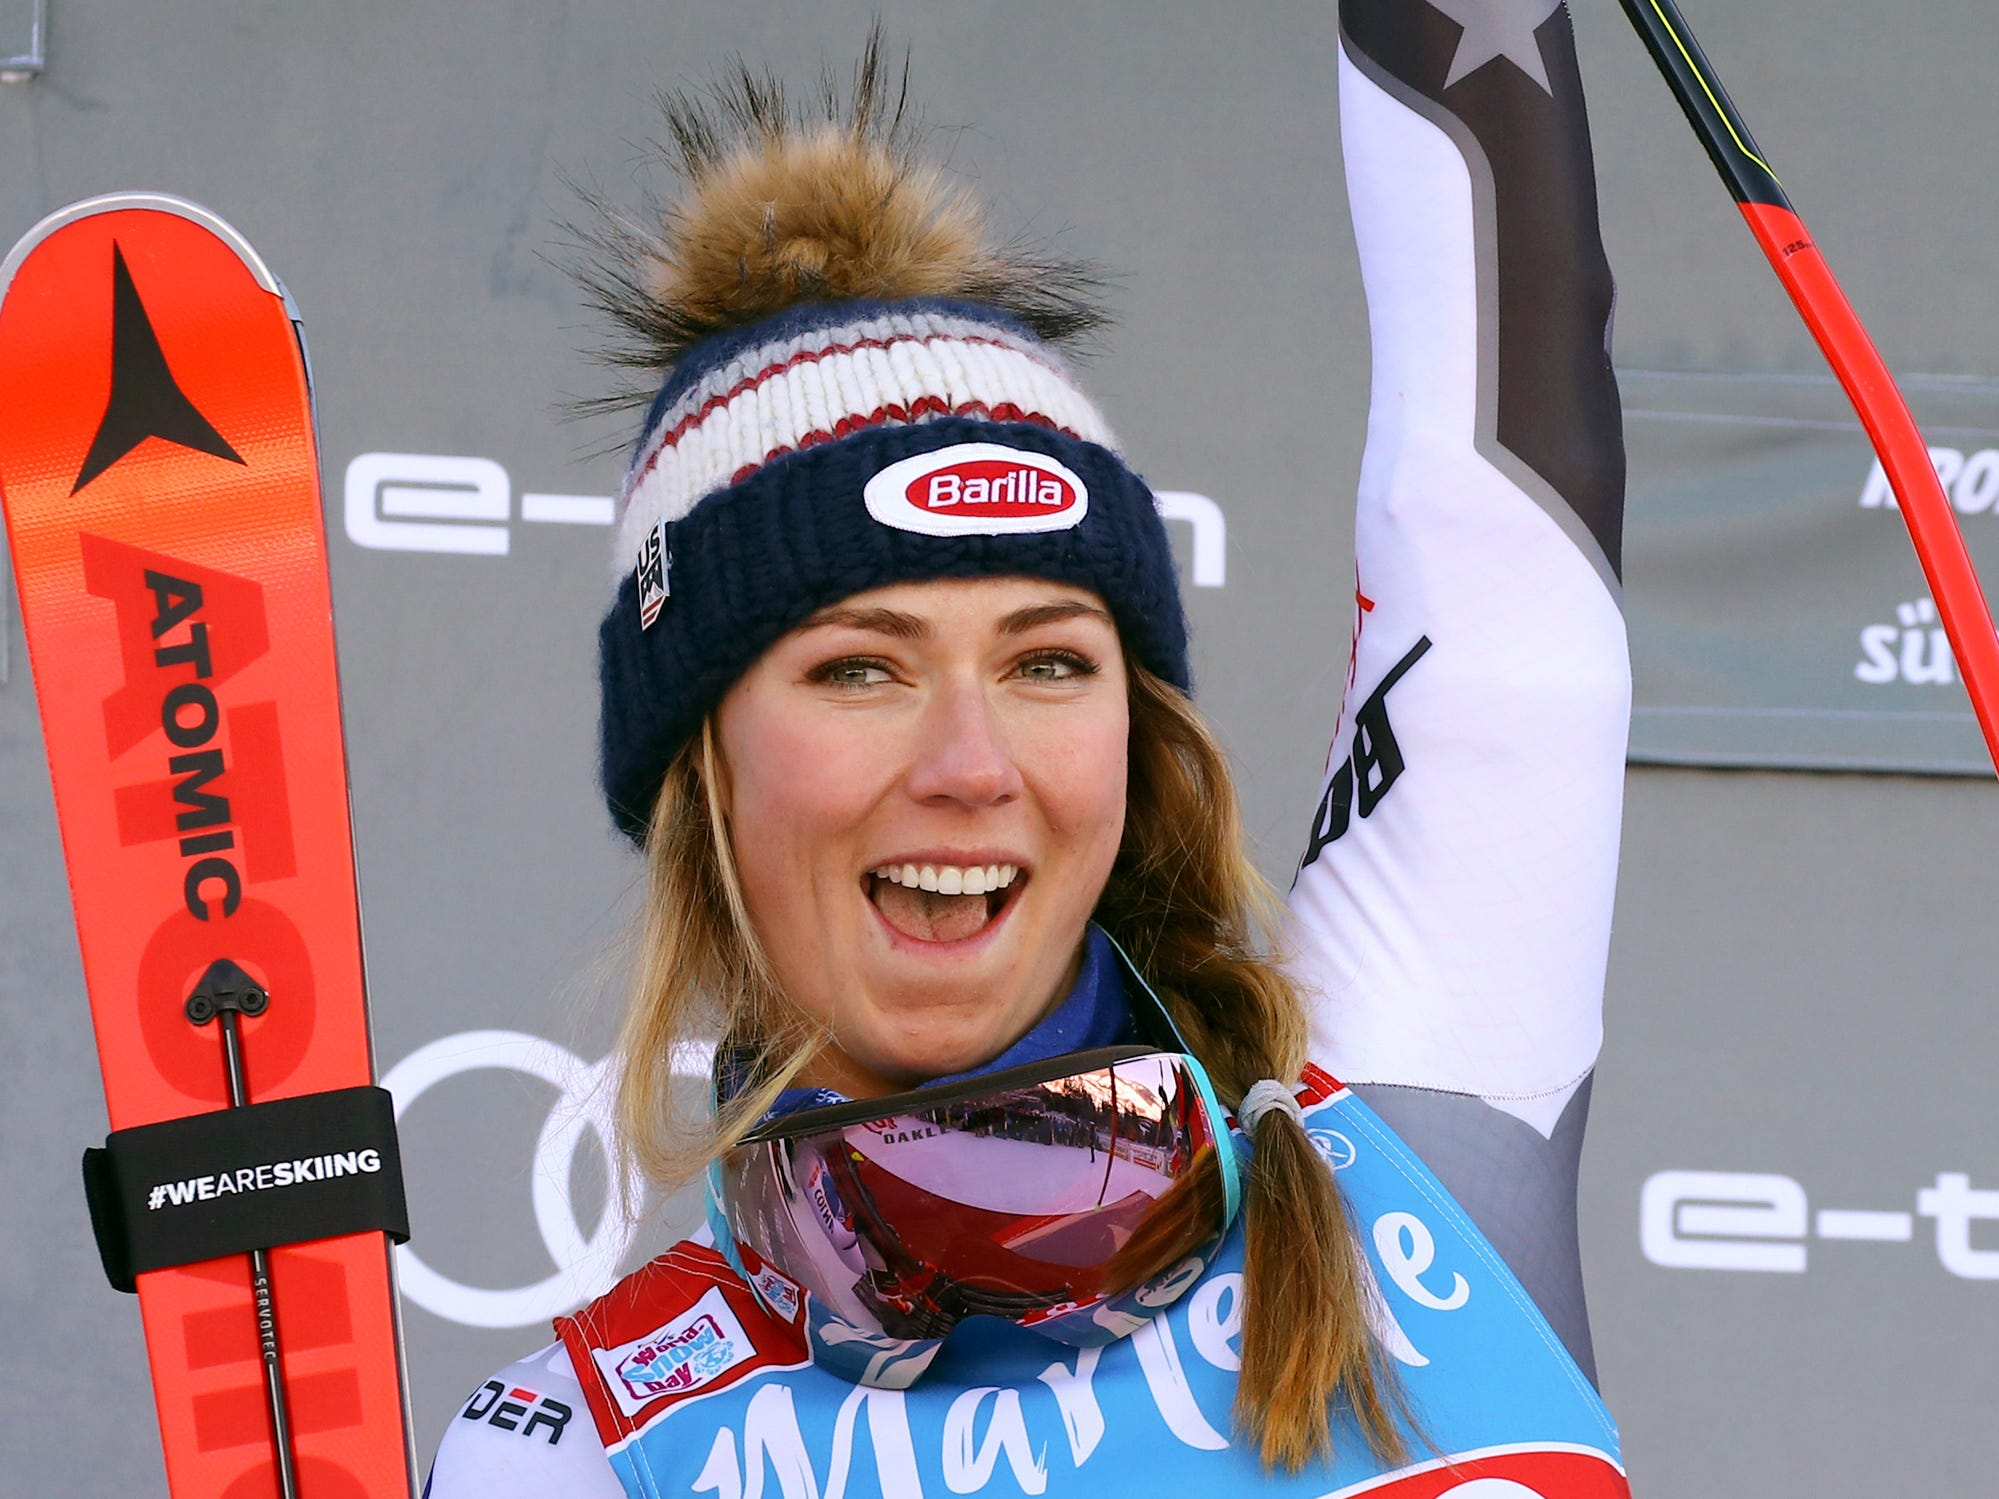 United States' Mikaela Shiffrin celebrates winning the women's World Cup giant slalom, in Kronplatz, Italy, Tuesday, Jan. 15, 2019.